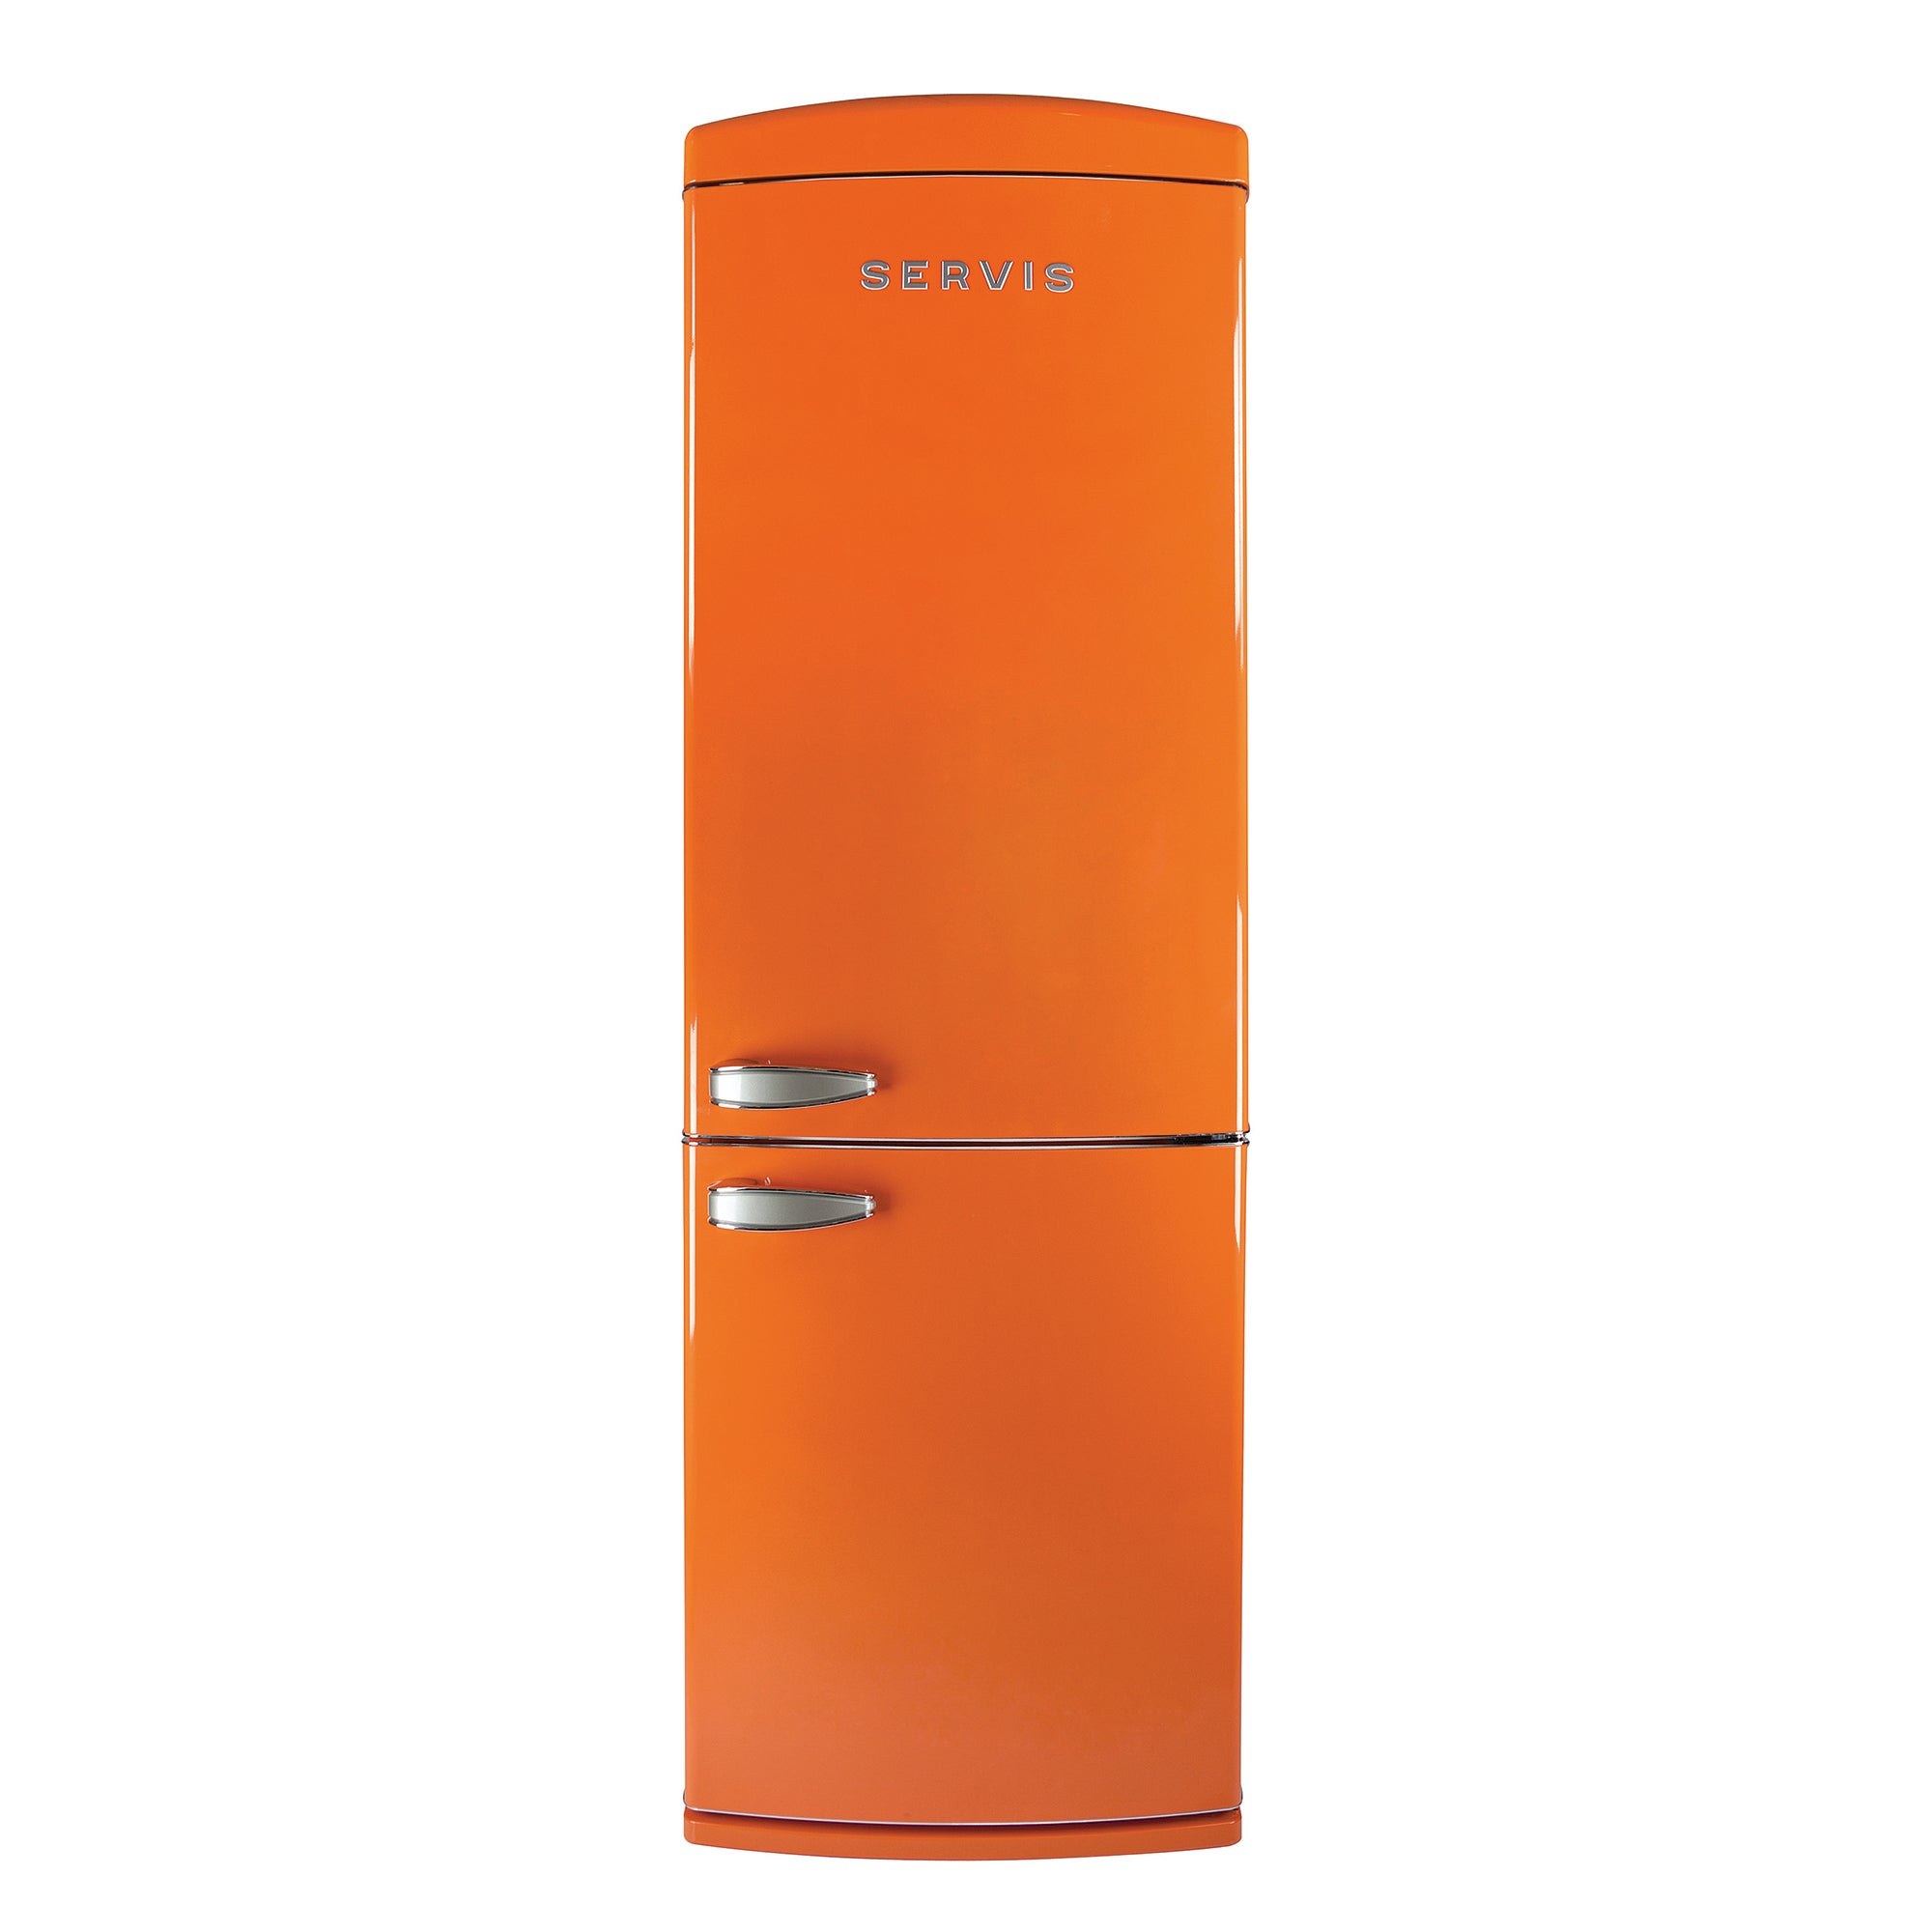 Servis C60185NFTG Orange Retro Style Fridge Freezer Orange